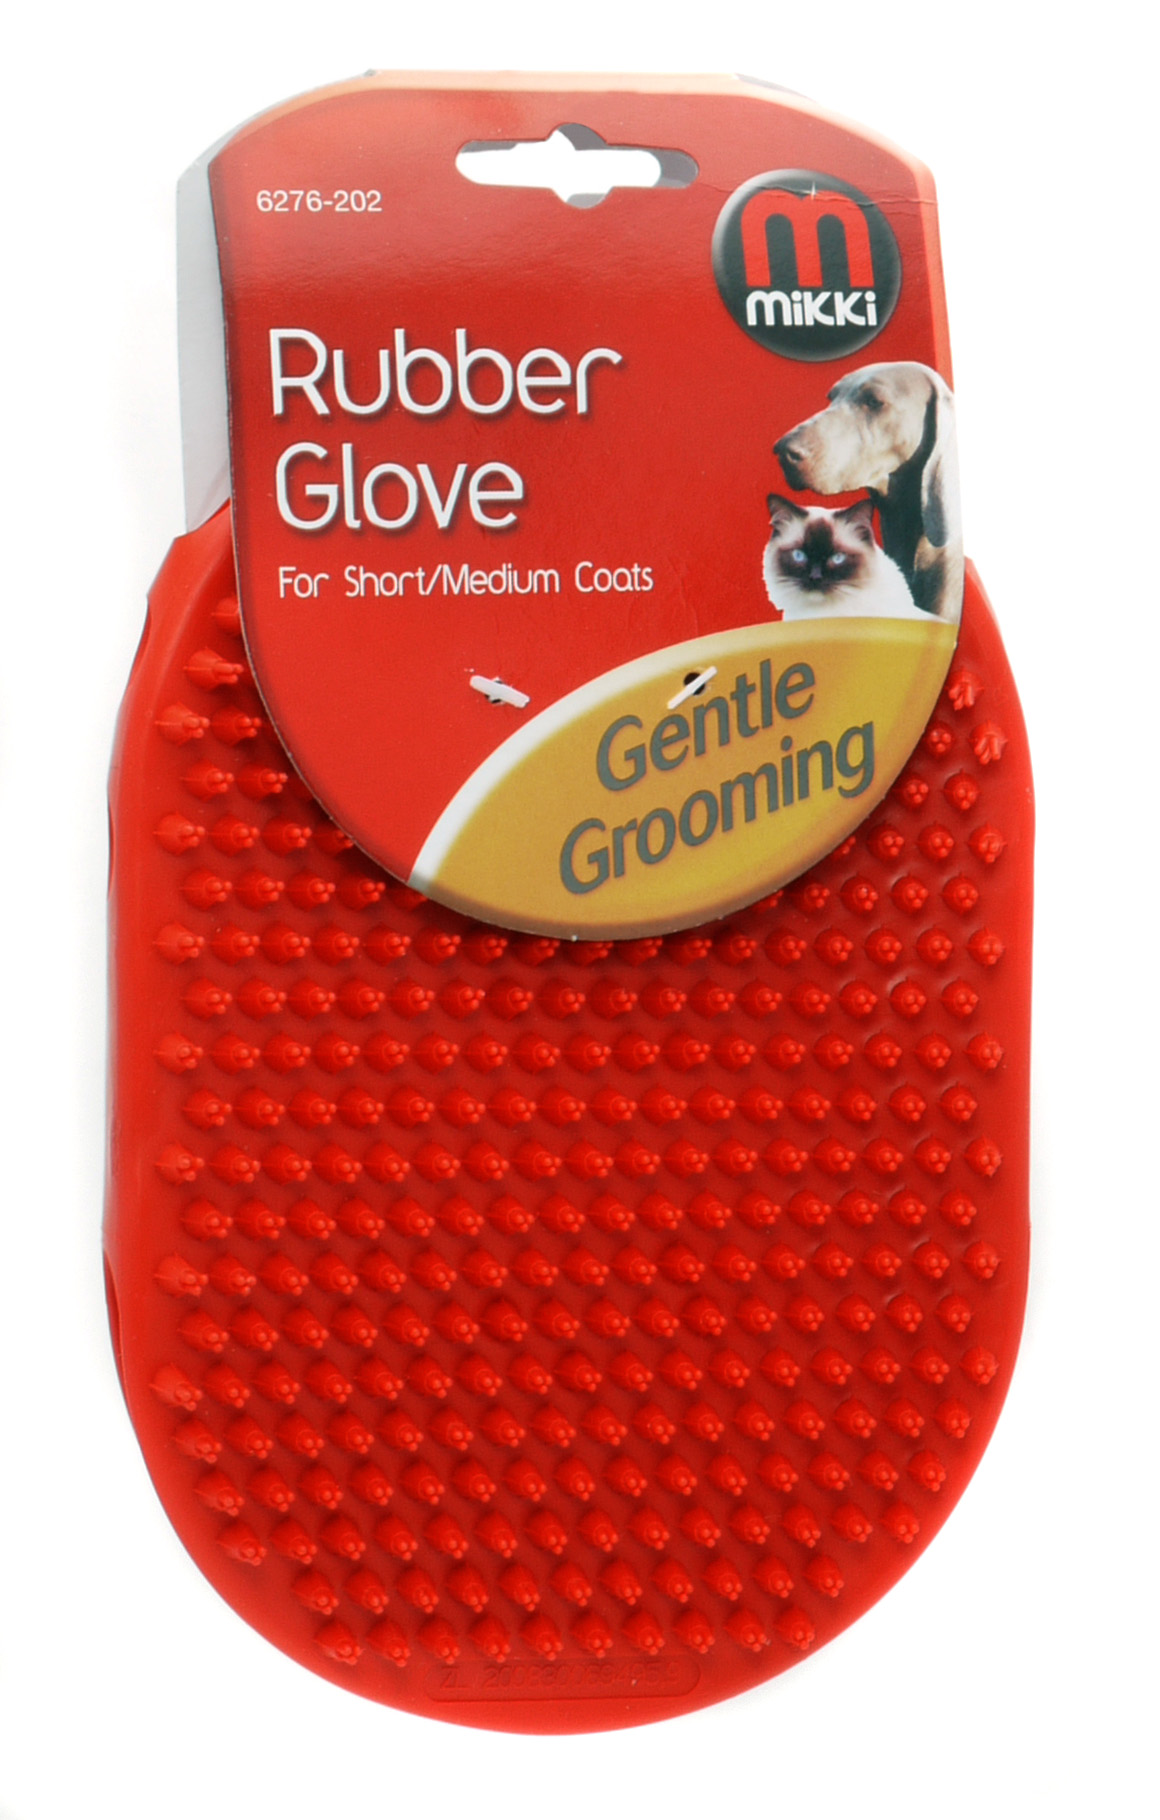 Mikki Rubber Glove For Short Coats